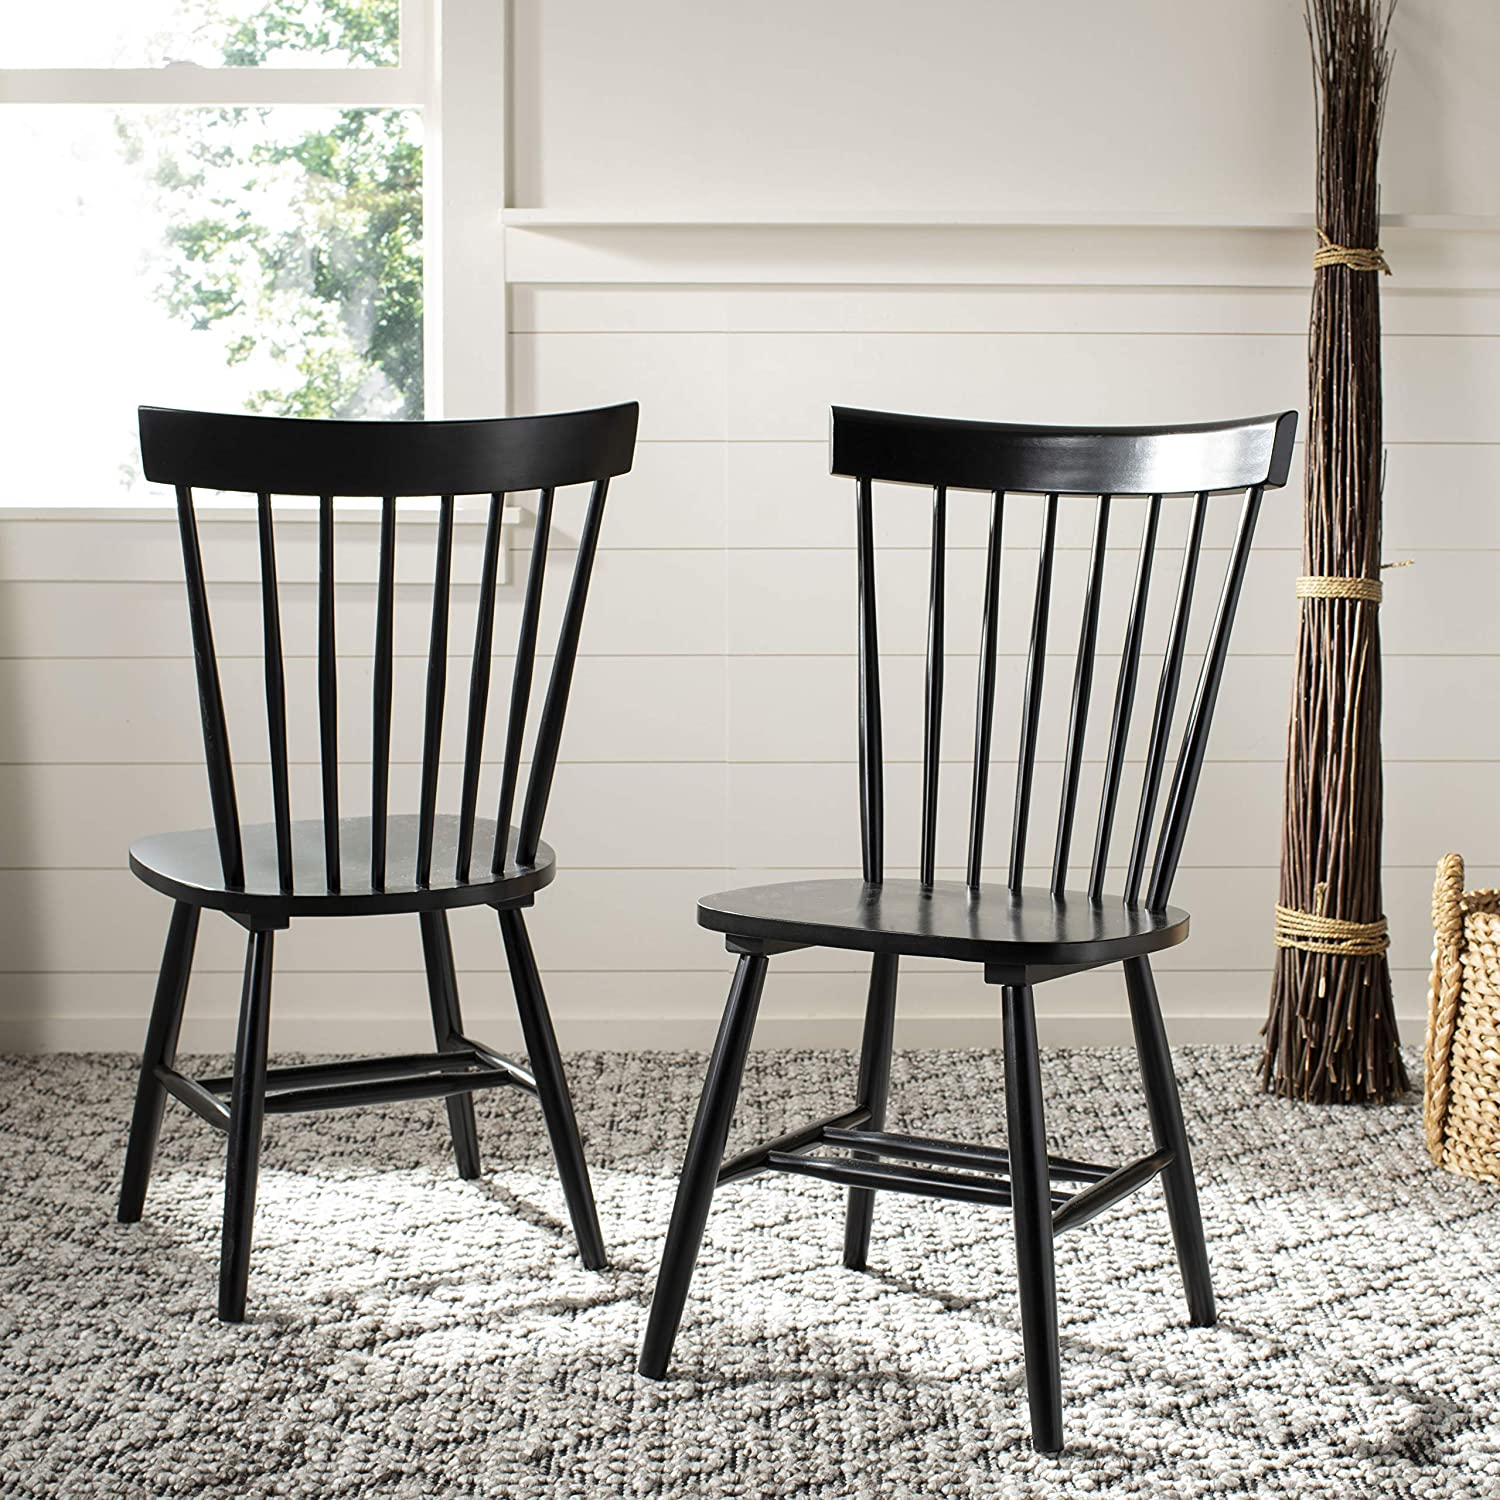 Best for Wood: Safavieh American Home Spindle Side Chair.